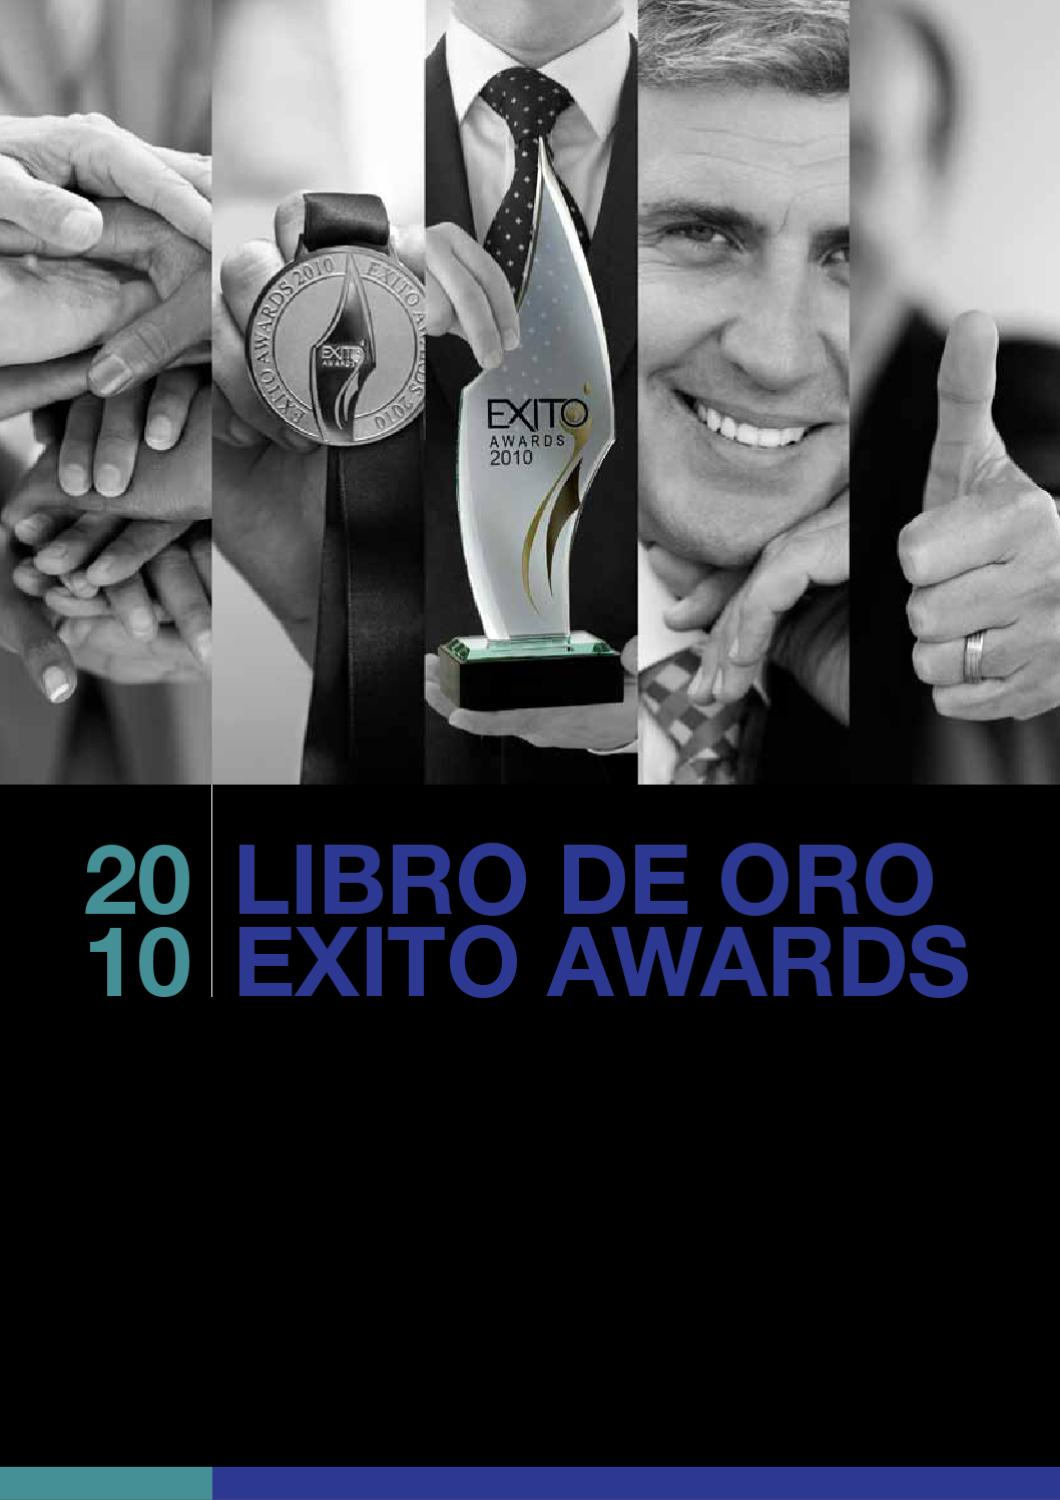 Libro Exito Libro De Oro Exito Awards 2010 By Eventos Internacionales